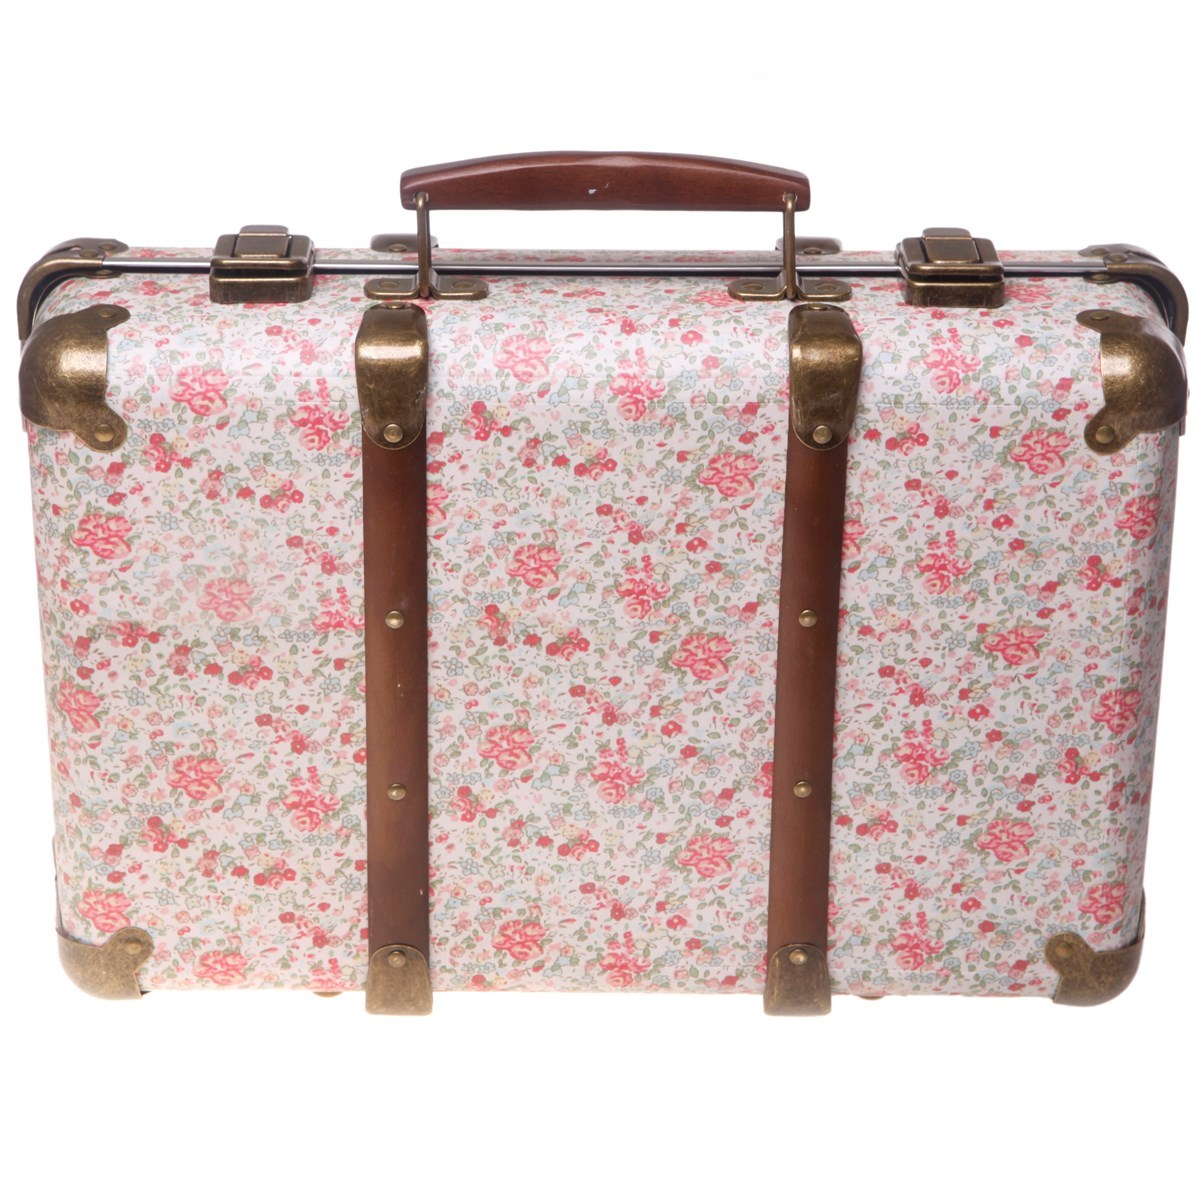 Set of 3 Vintage Floral Suitcases